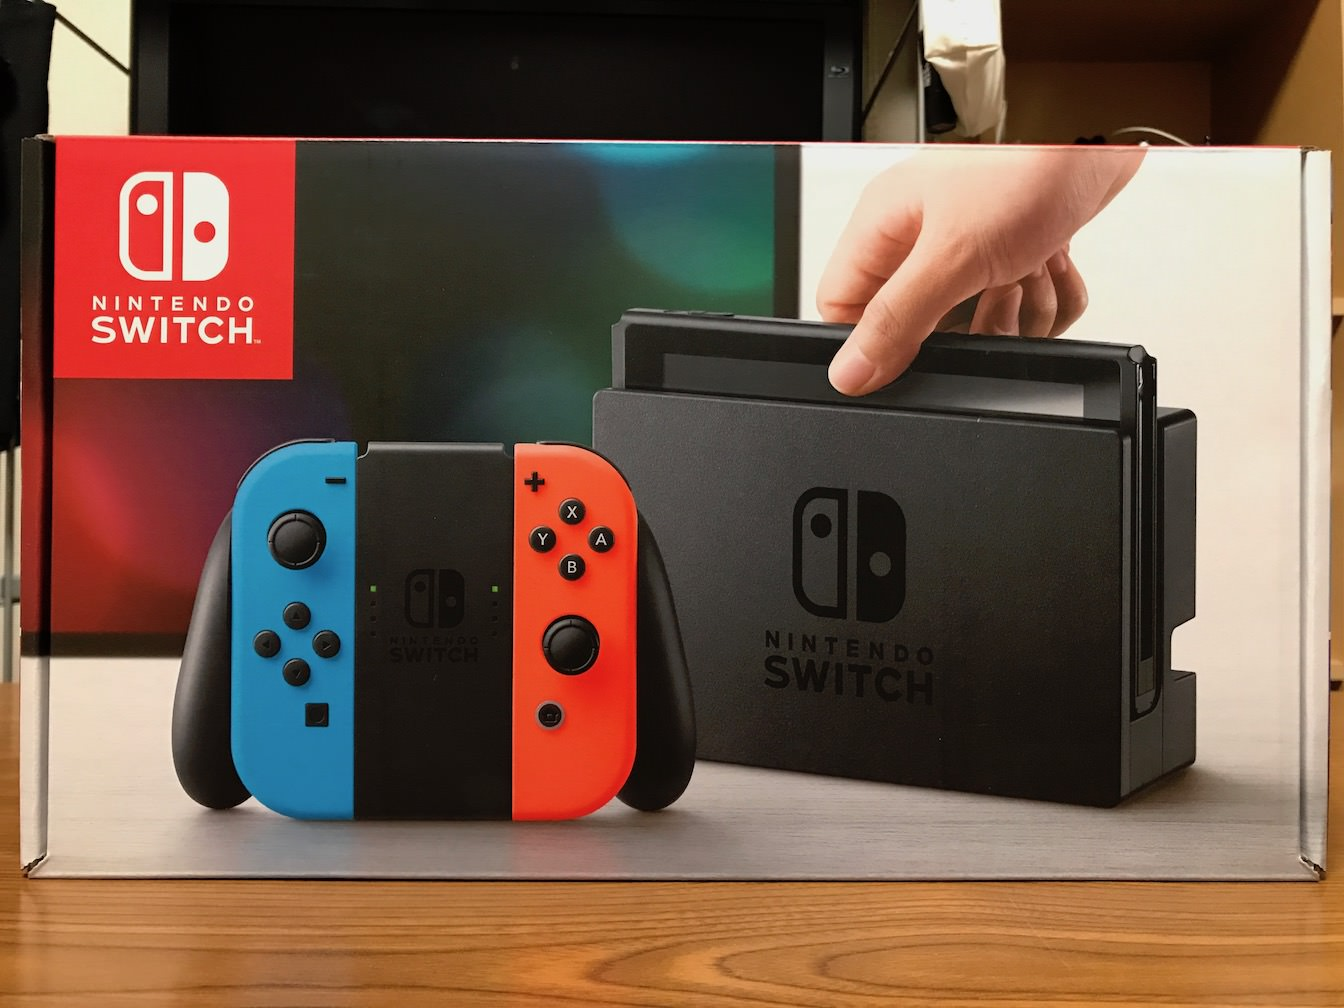 Nintendo switch first impression 2